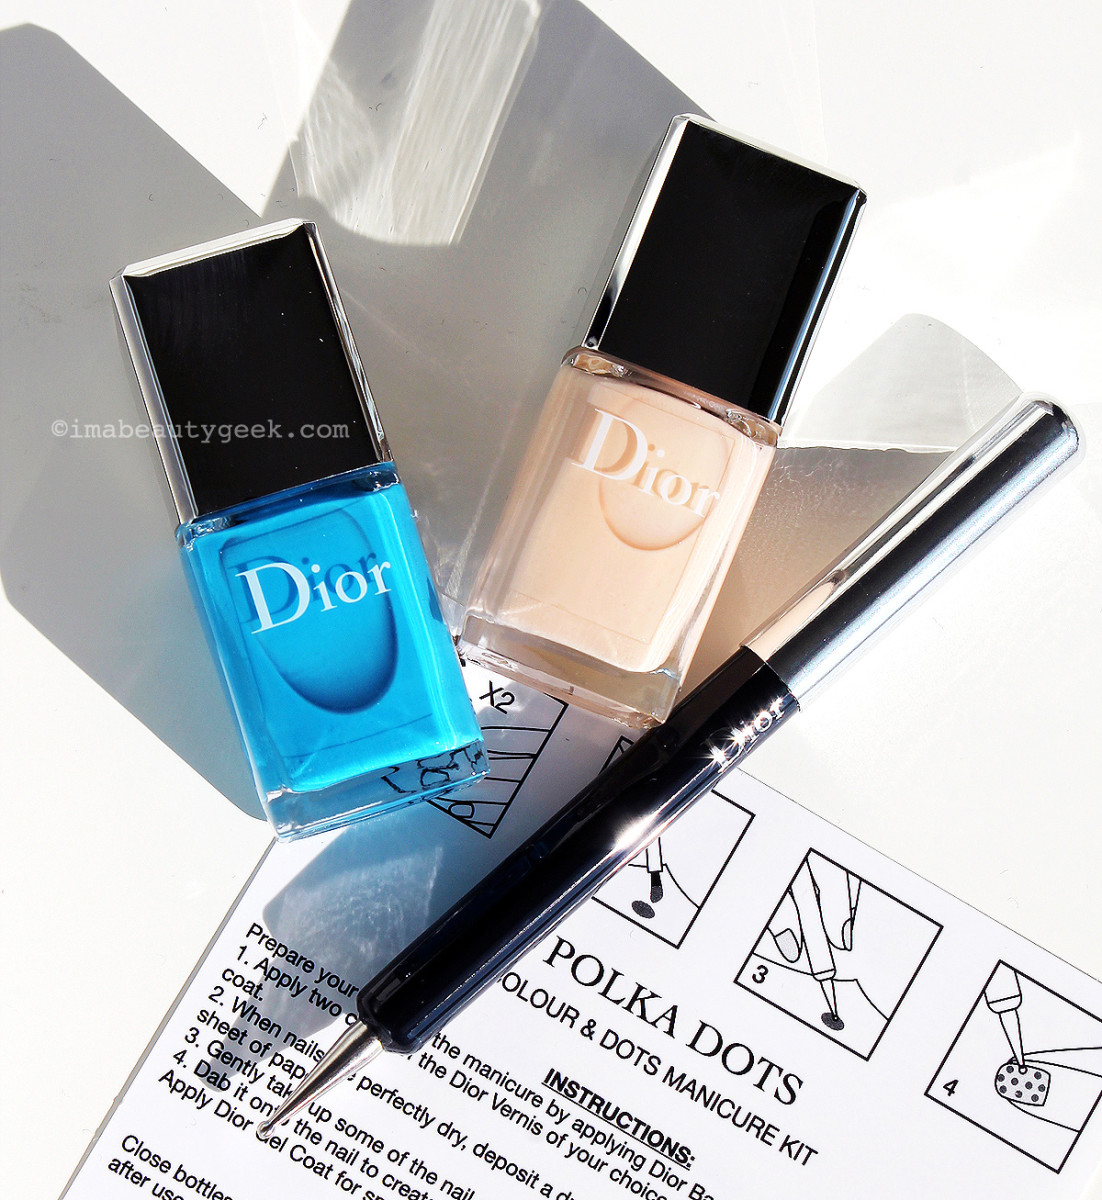 Dior Polka Dots Colour & Dots Manicure Kit limited edition